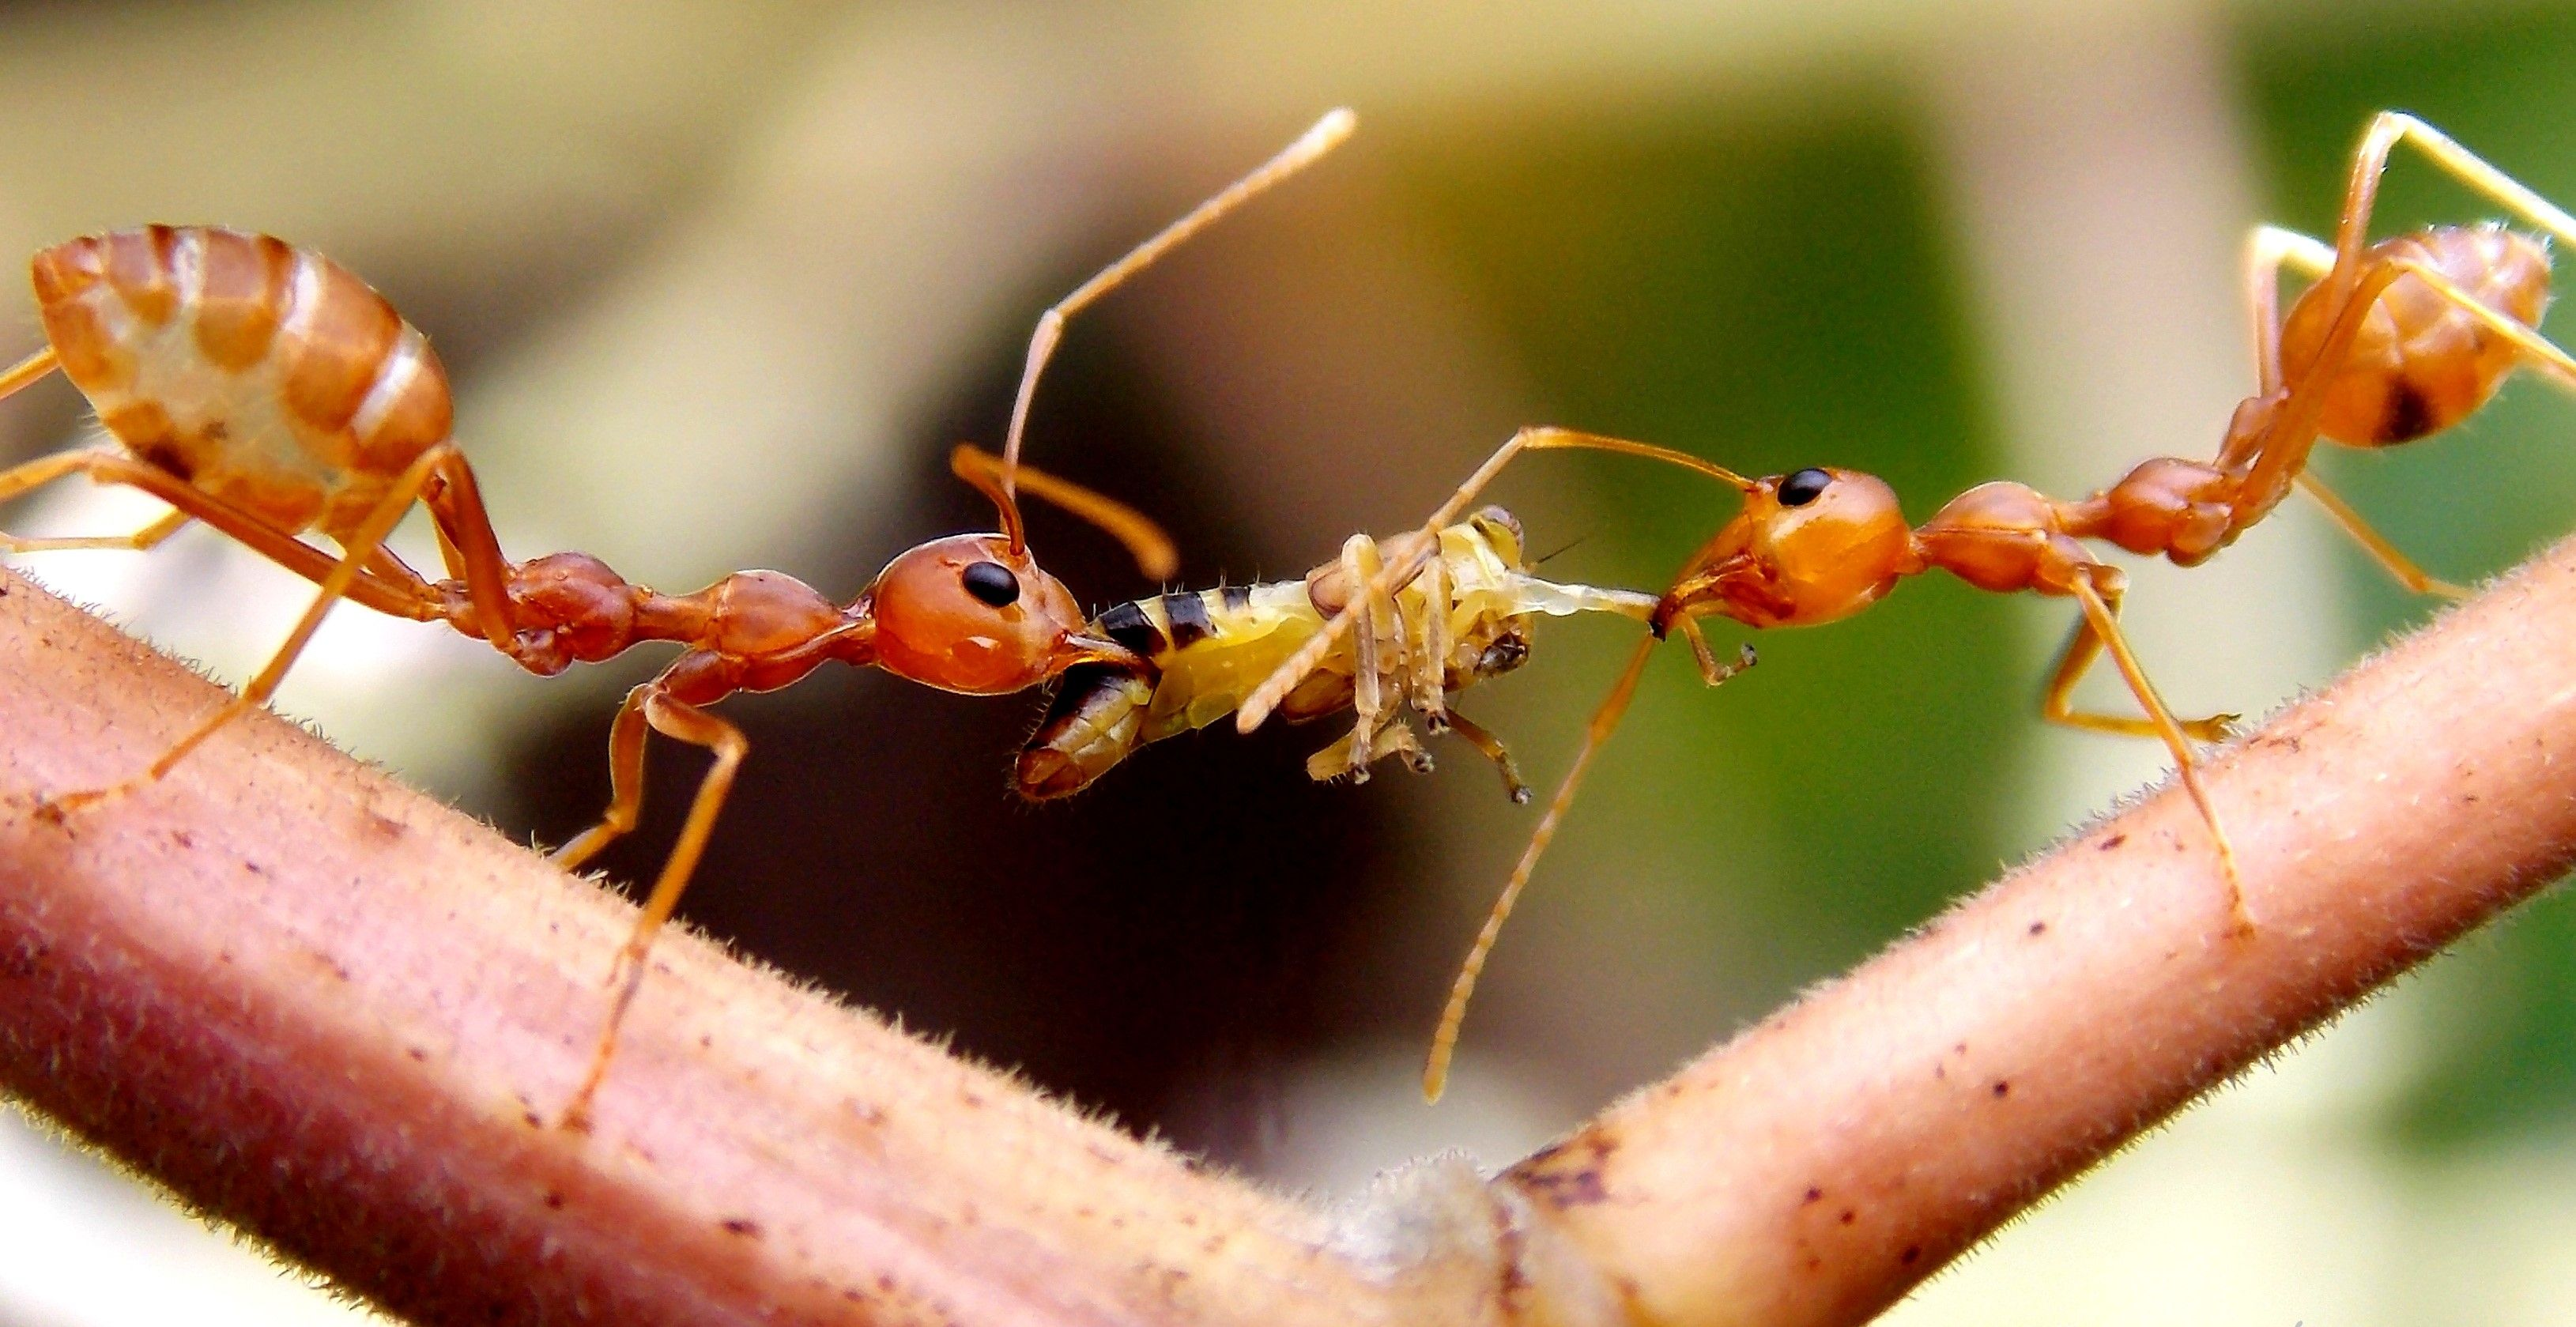 14+ What animals eat ants ideas in 2021